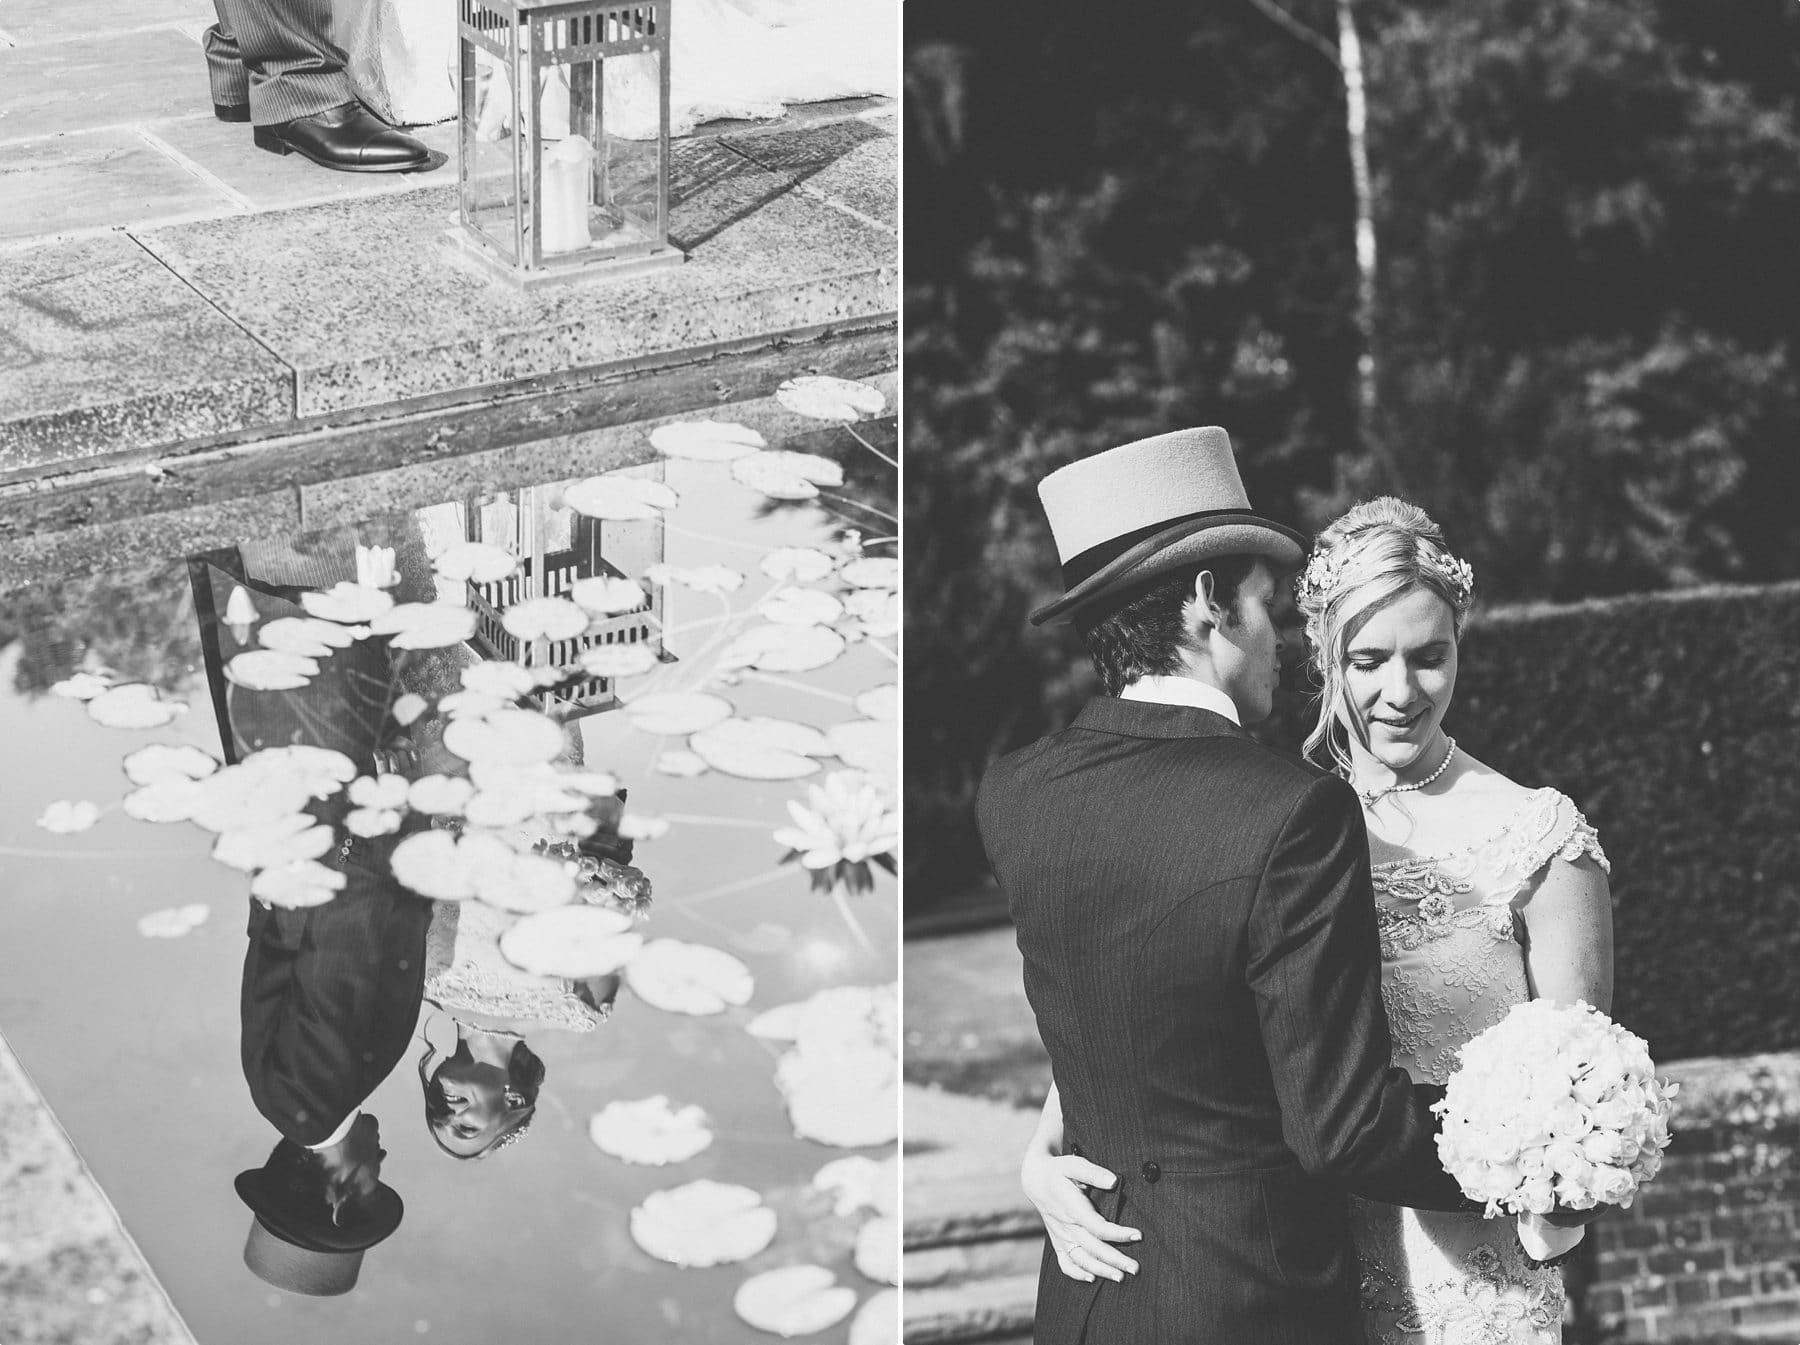 Bride and groom summer wedding portrait at coworth park lily pond fountain